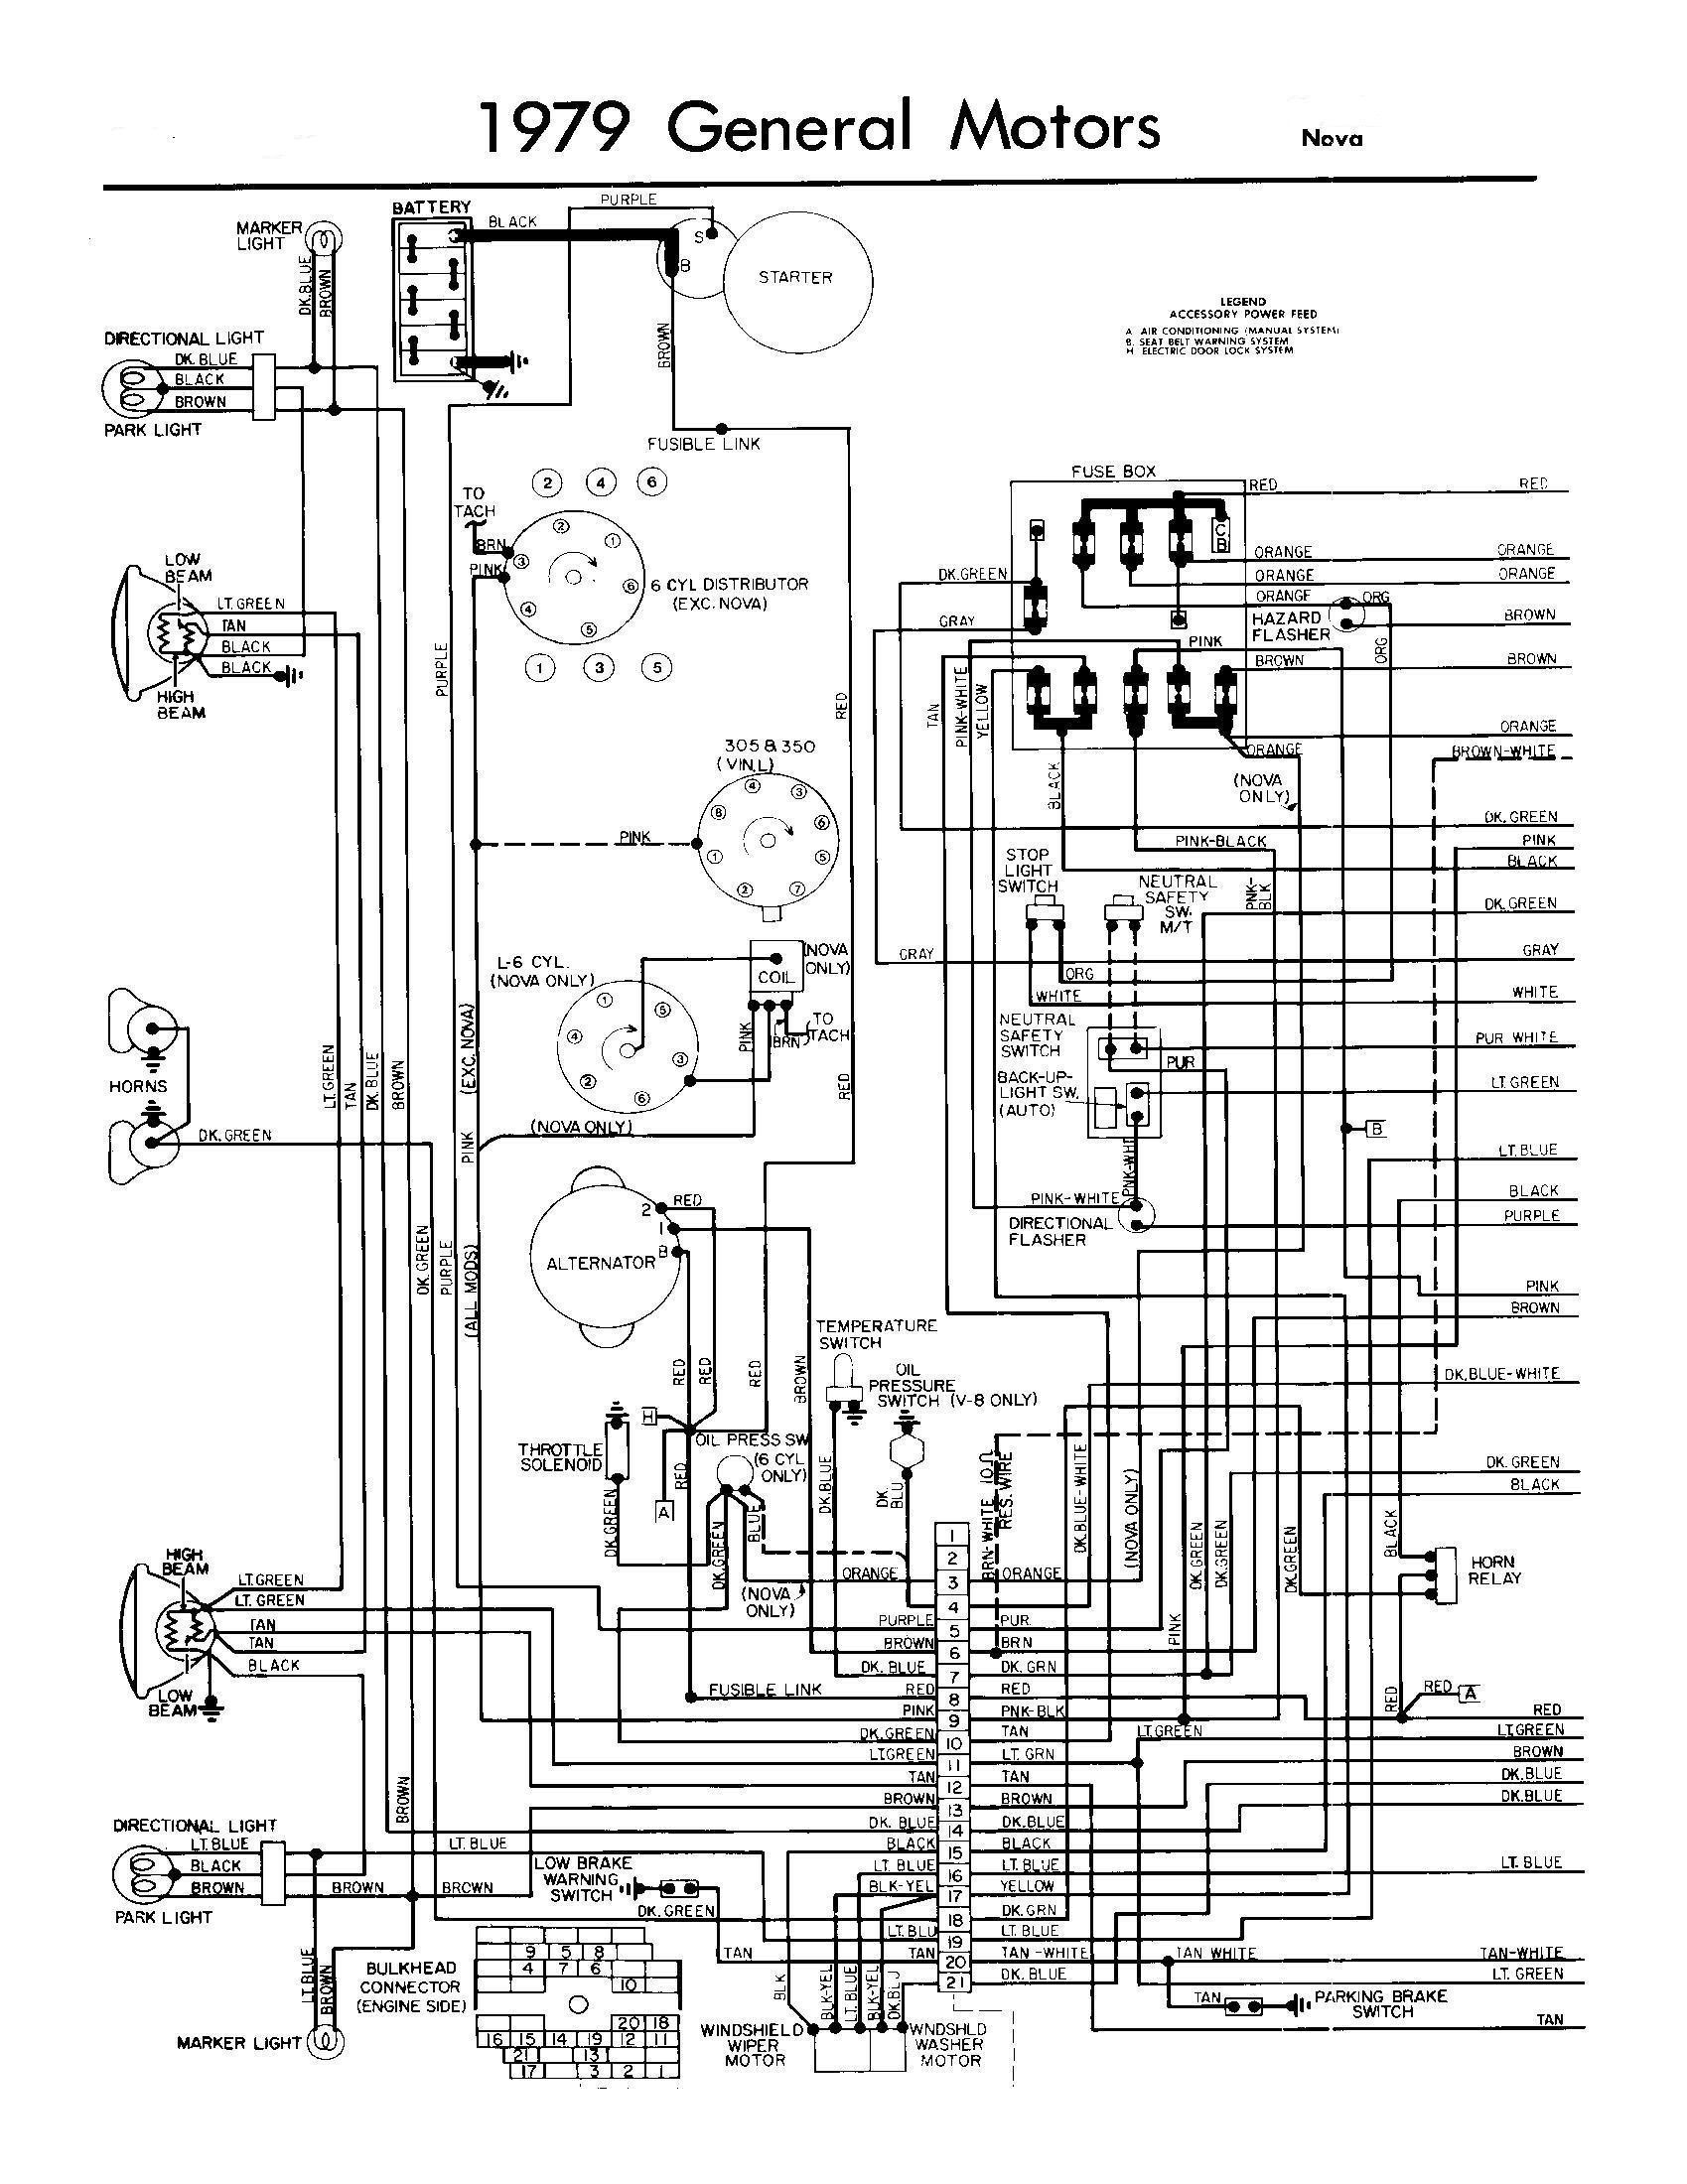 caterpillar 3208 marine engine wiring diagram gallery 1964 chevy truck turn signal wiring diagram